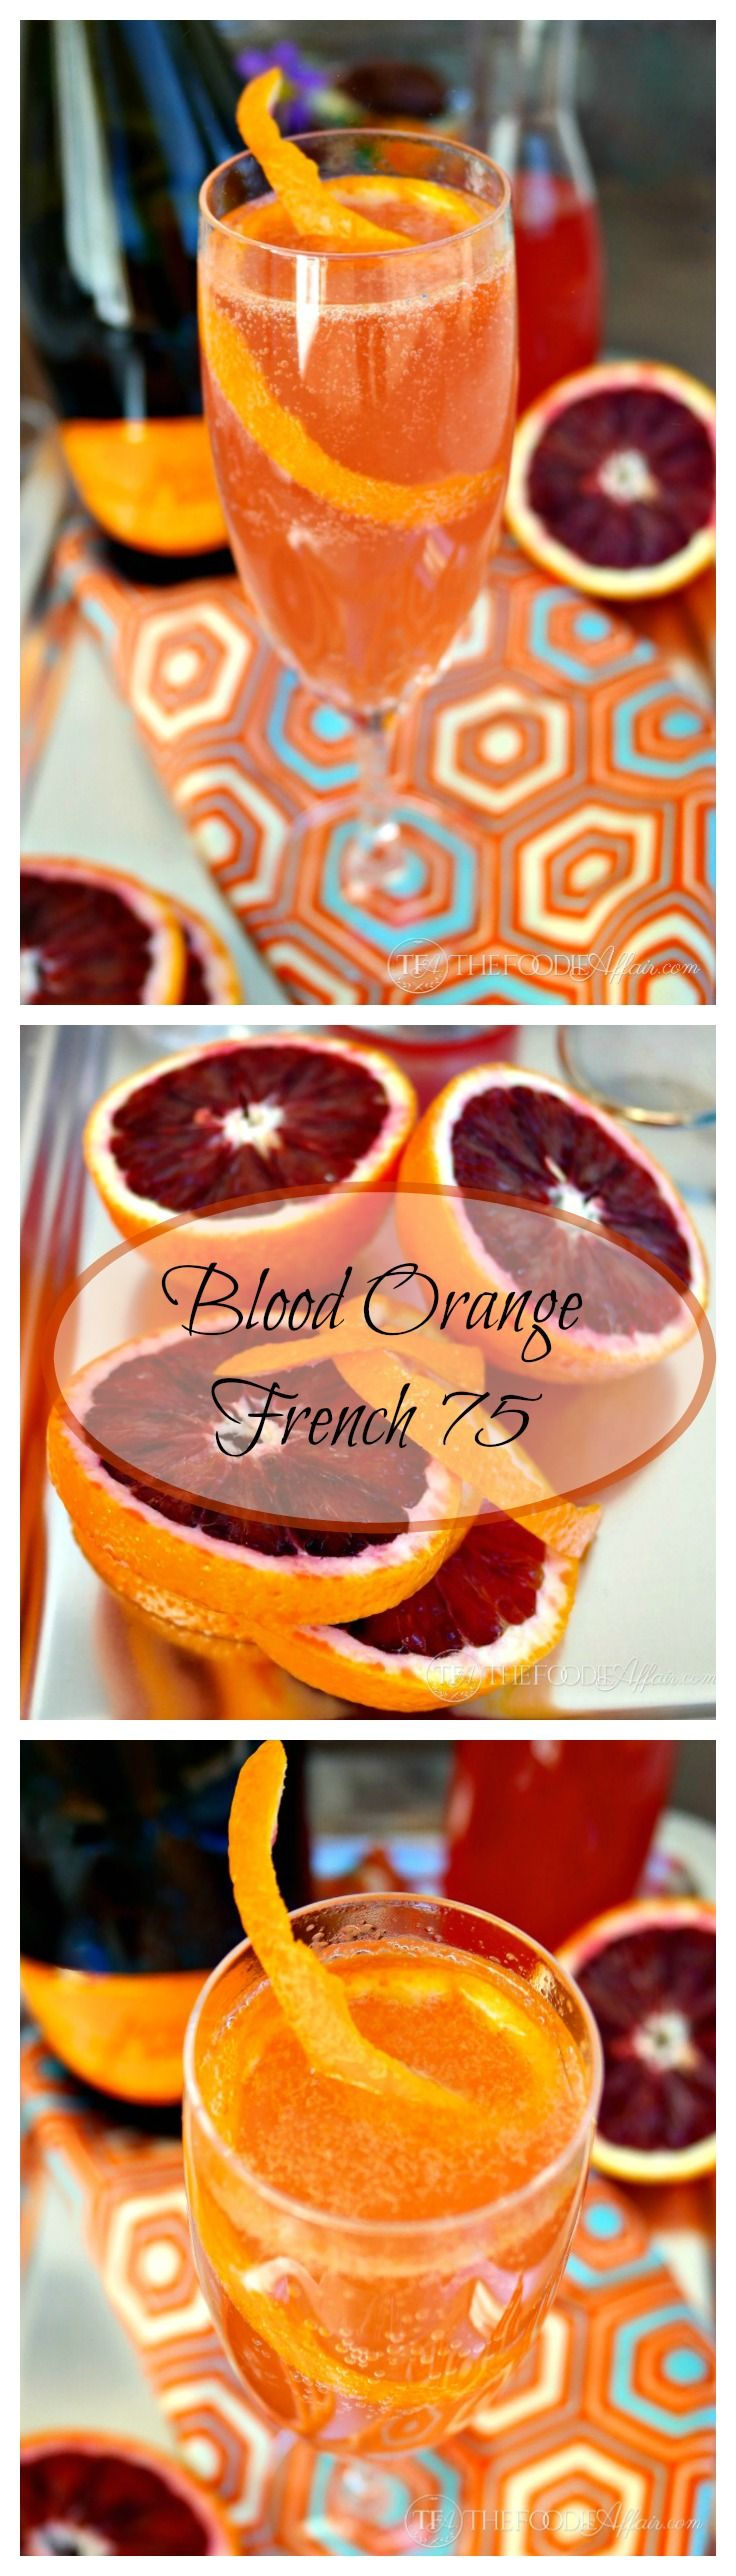 Blood Orange French 75 is a great celebratory cocktail! French 75 classic cocktail made with gin and champagne and lemon juice. Instead of using lemons for the citrus, vibrant blood oranges complete this drink.